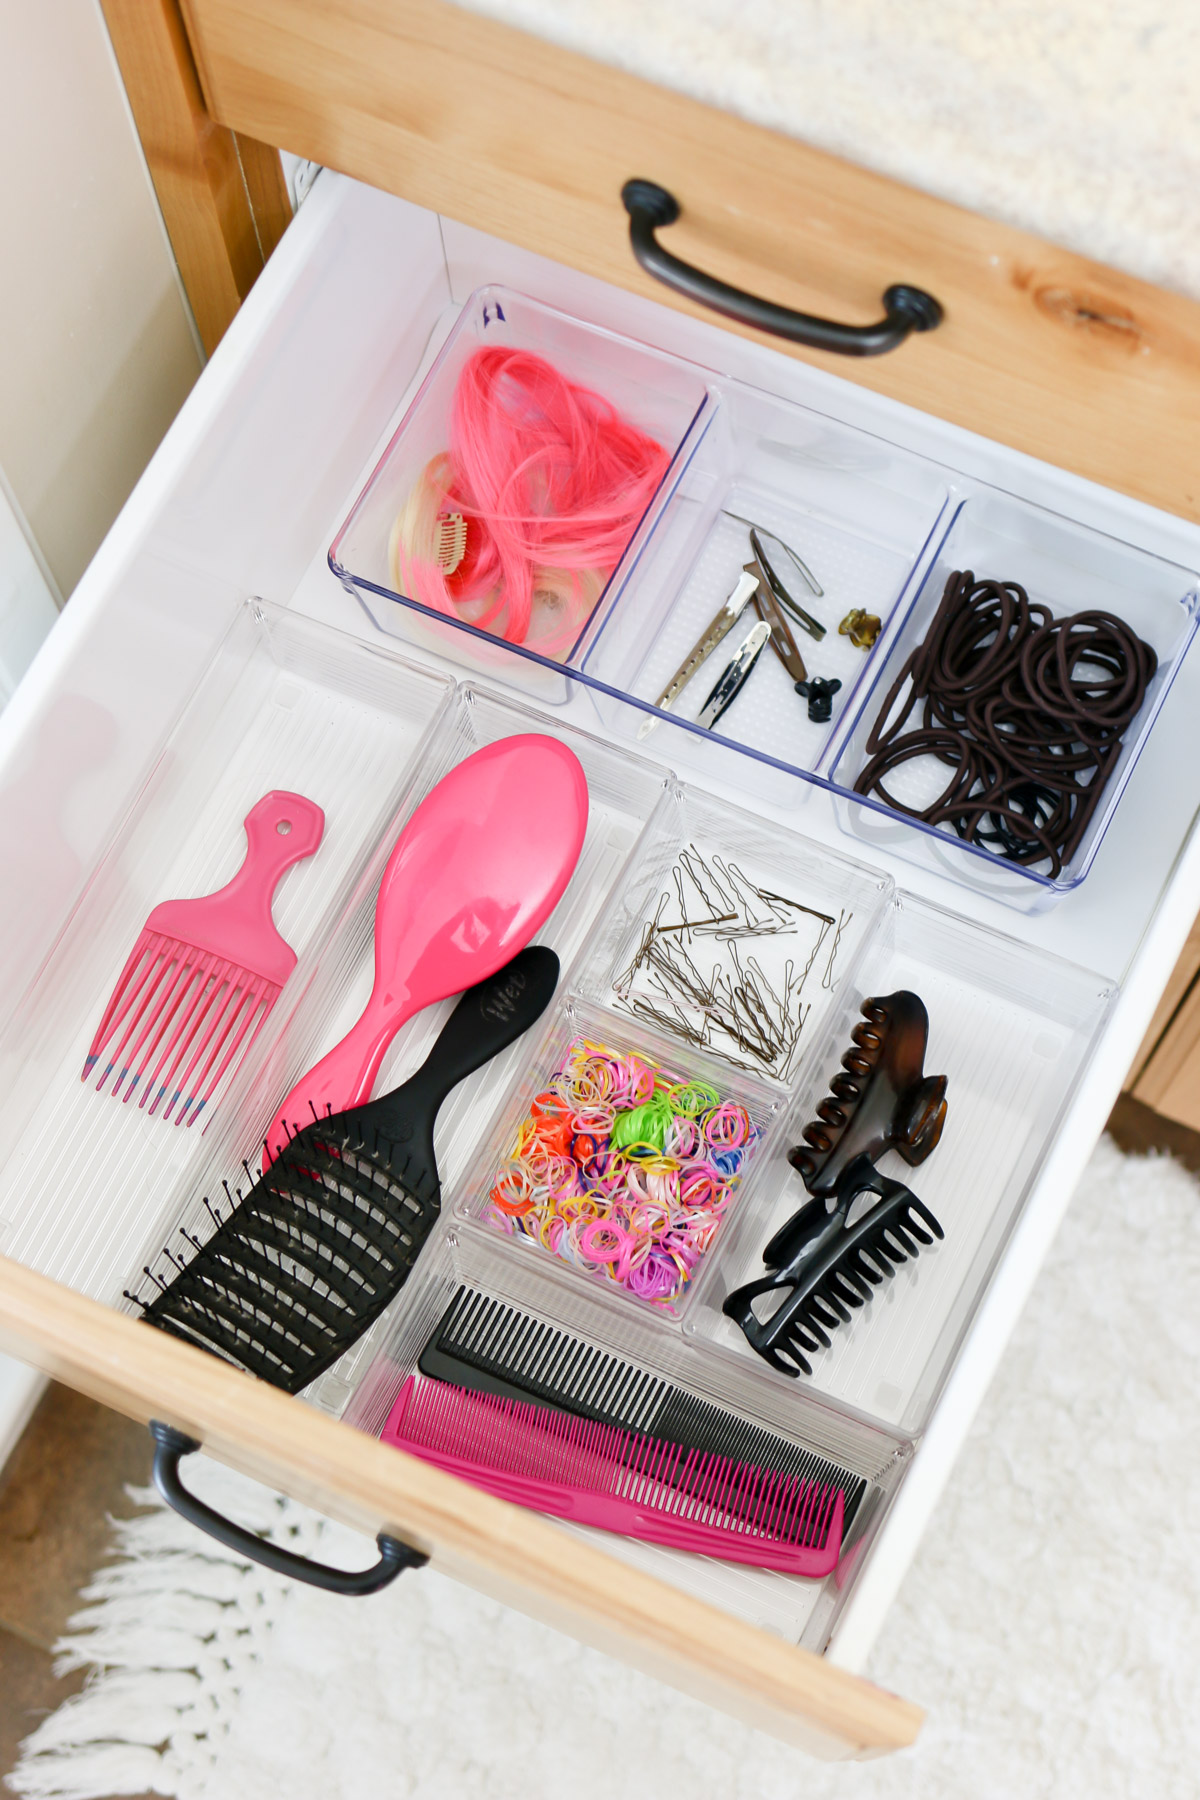 hair care and bathroom organization